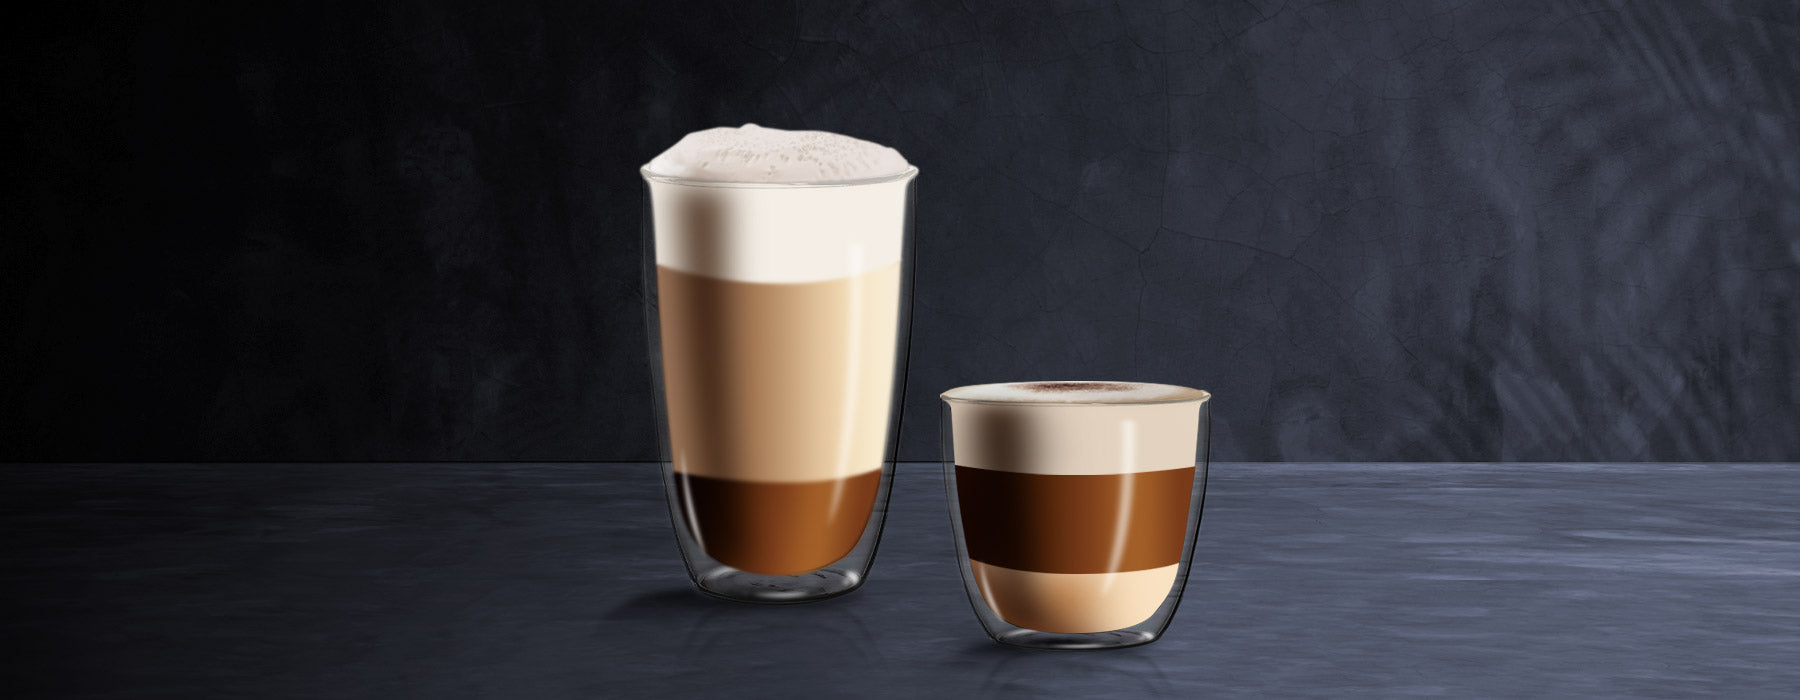 What's the Difference Between a Latte and Cappuccino? - Coffee Life, a blog by EspressoWorks